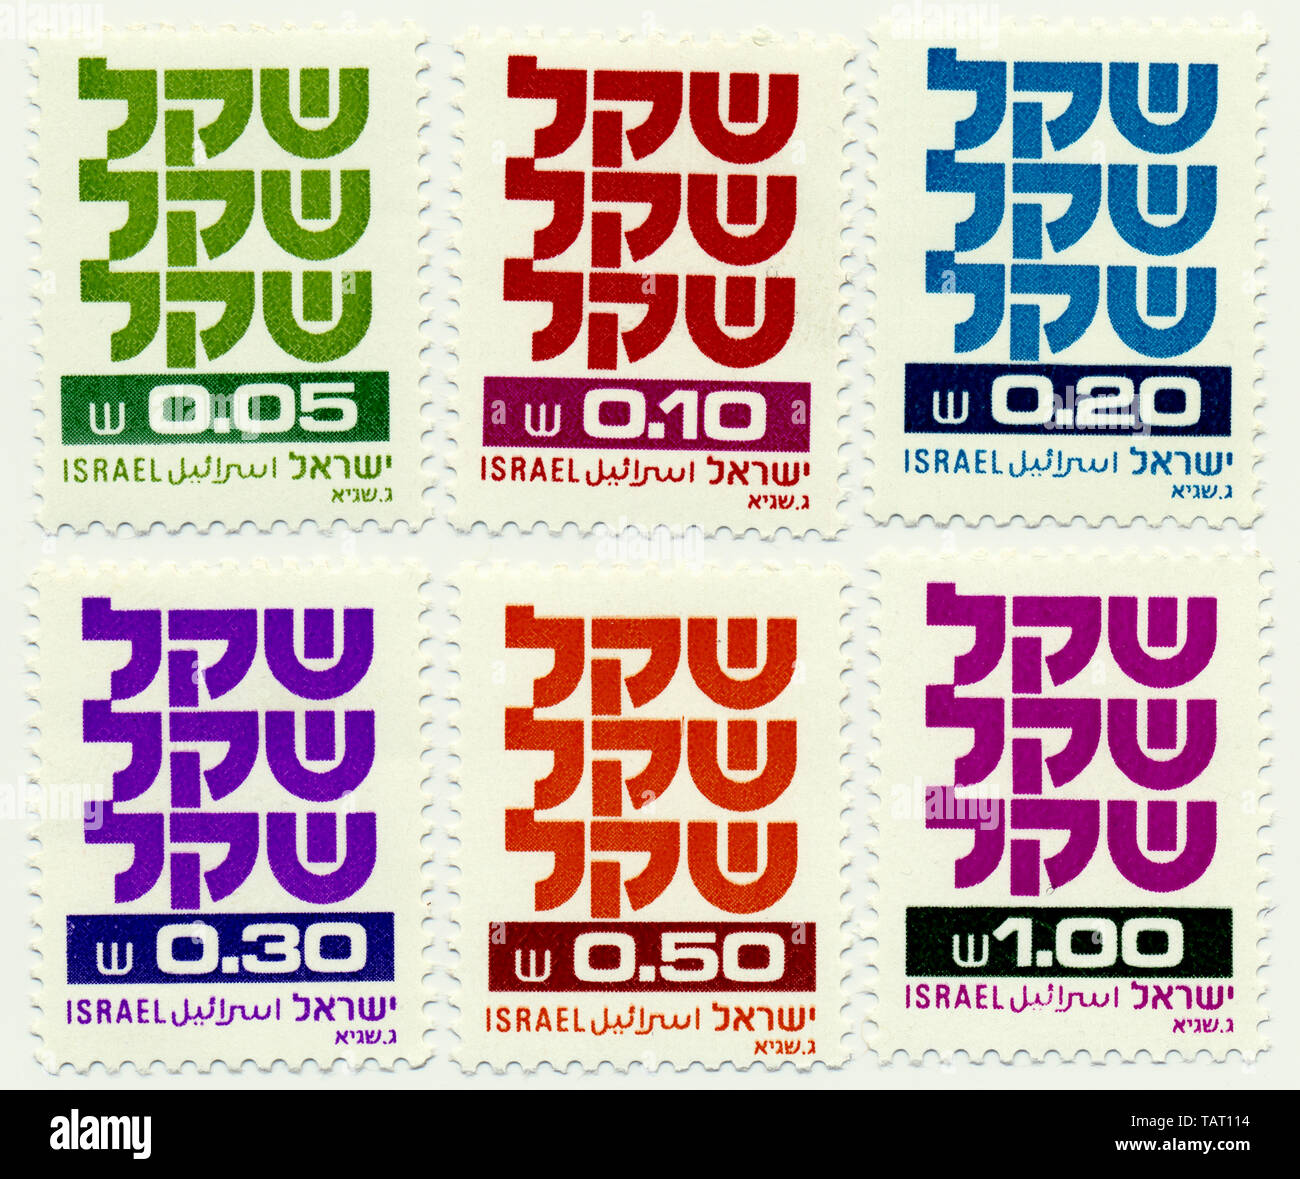 Hebrew Name Stock Photos & Hebrew Name Stock Images - Alamy